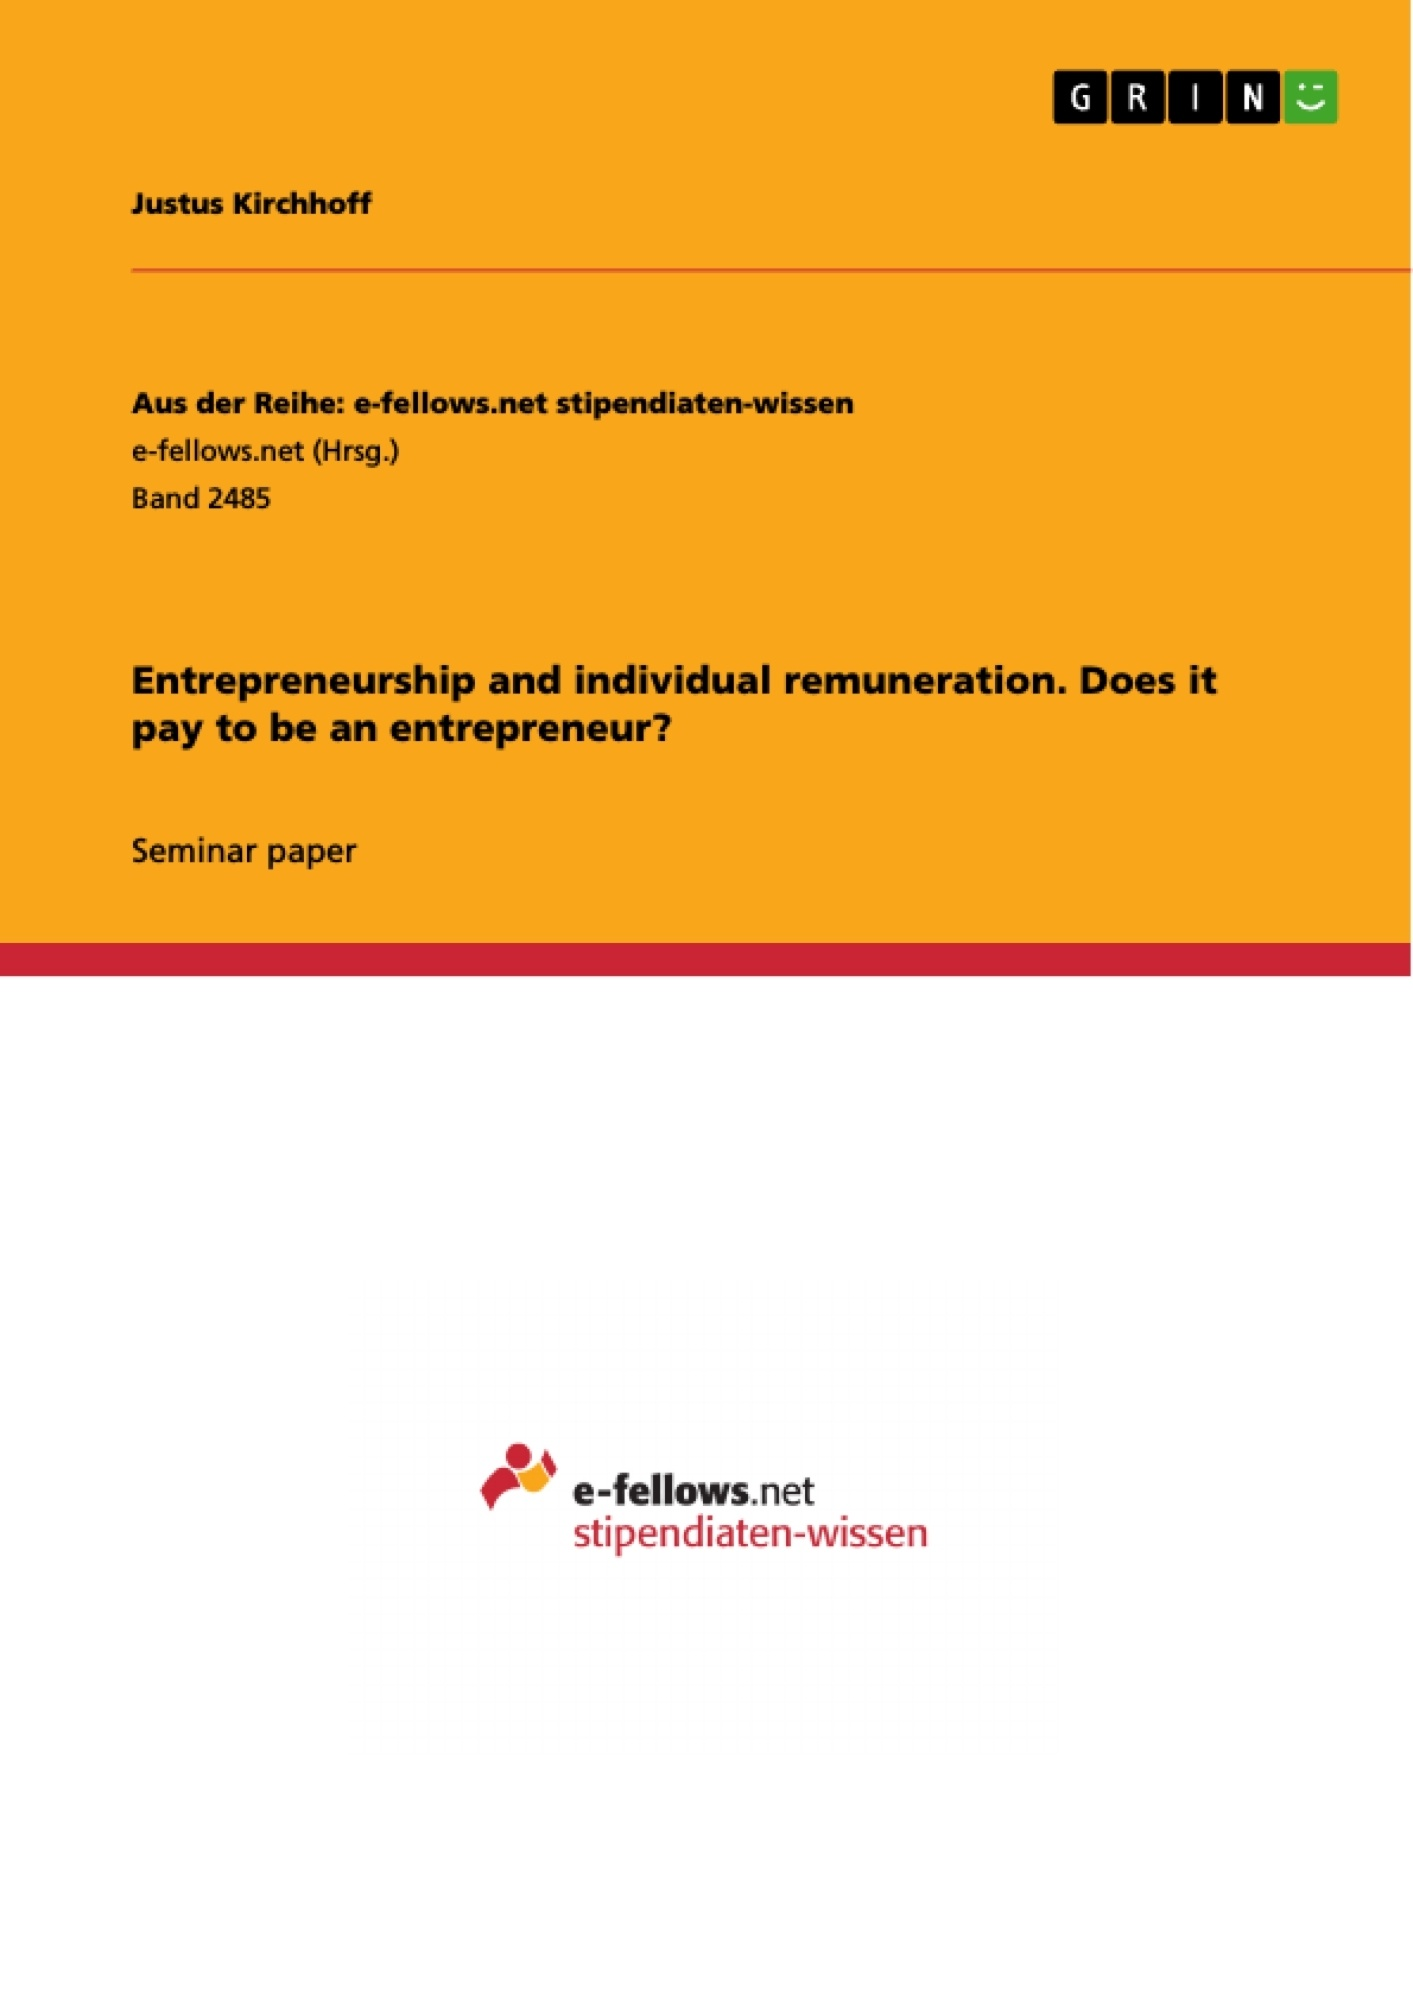 Title: Entrepreneurship and individual remuneration. Does it pay to be an entrepreneur?